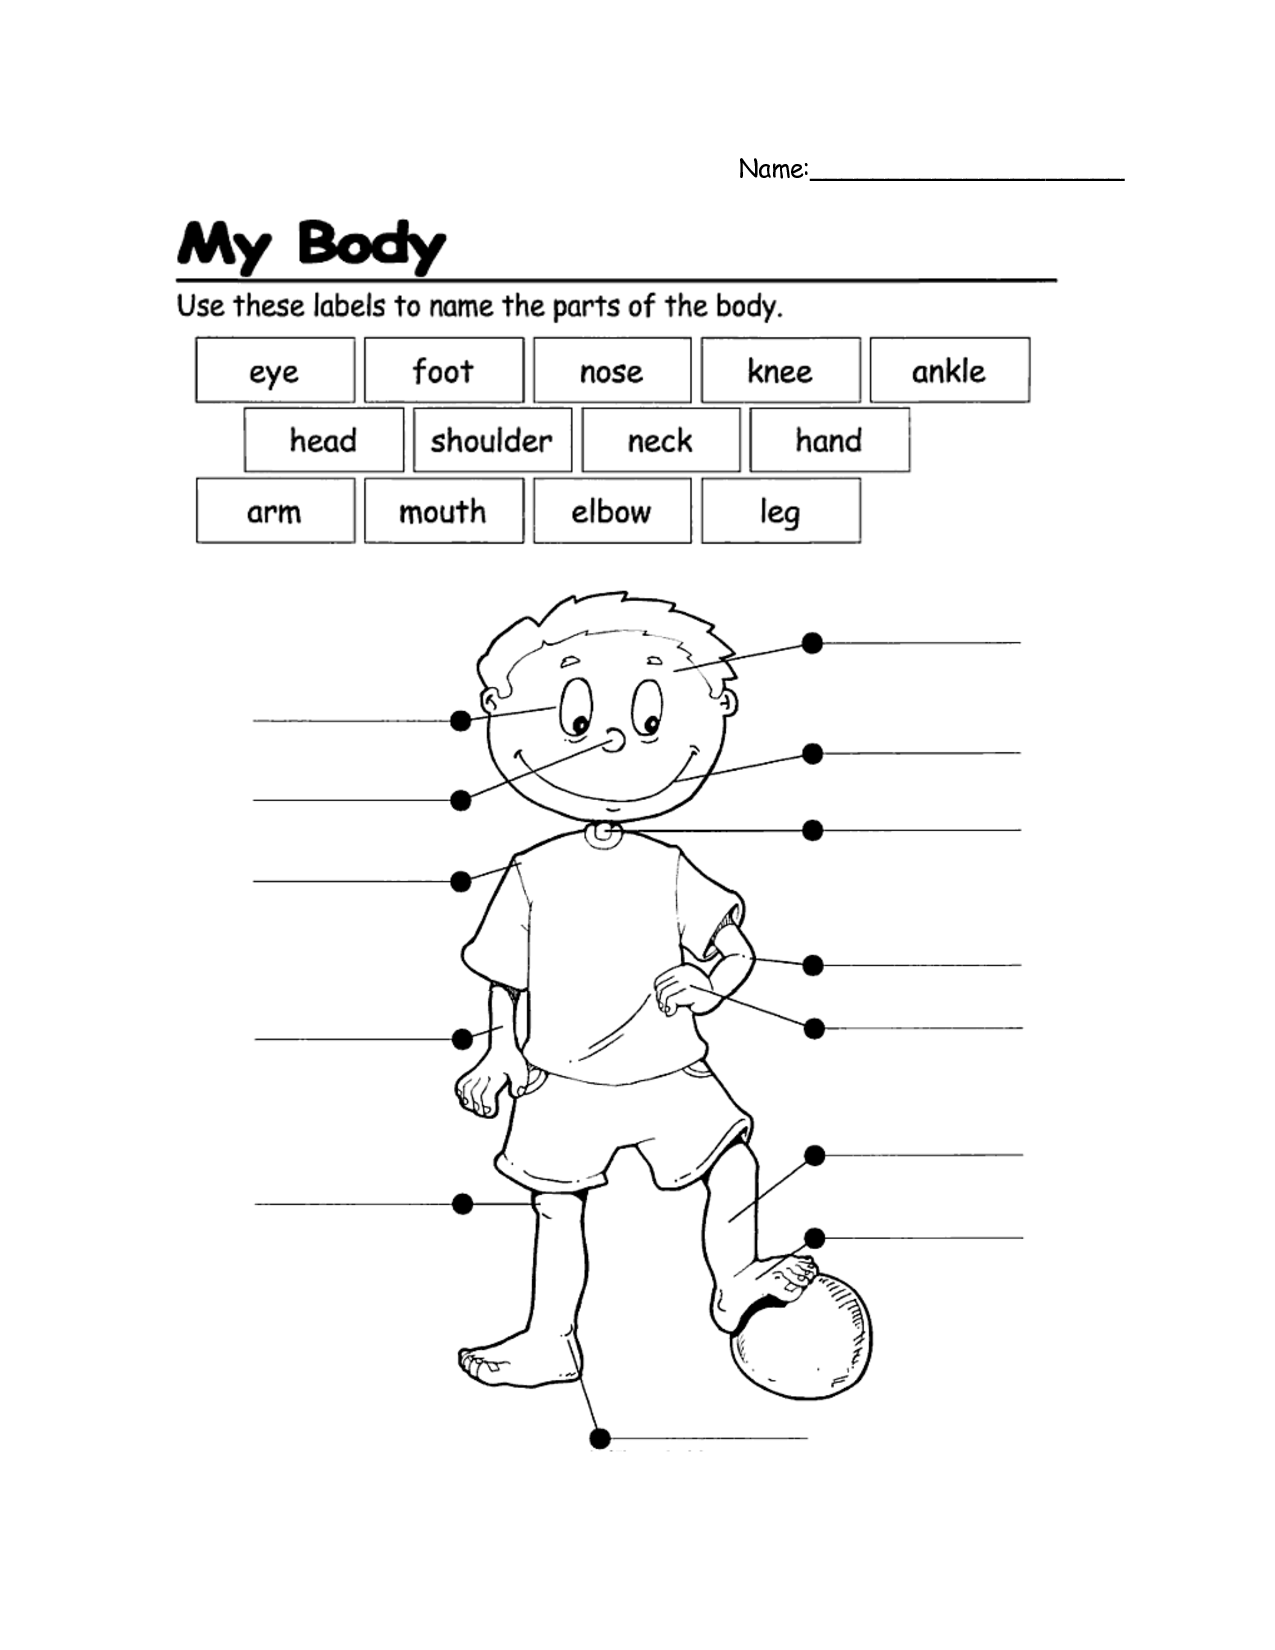 Worksheets Worksheet-body-parts name parts of the body first grade yahoo image search results results